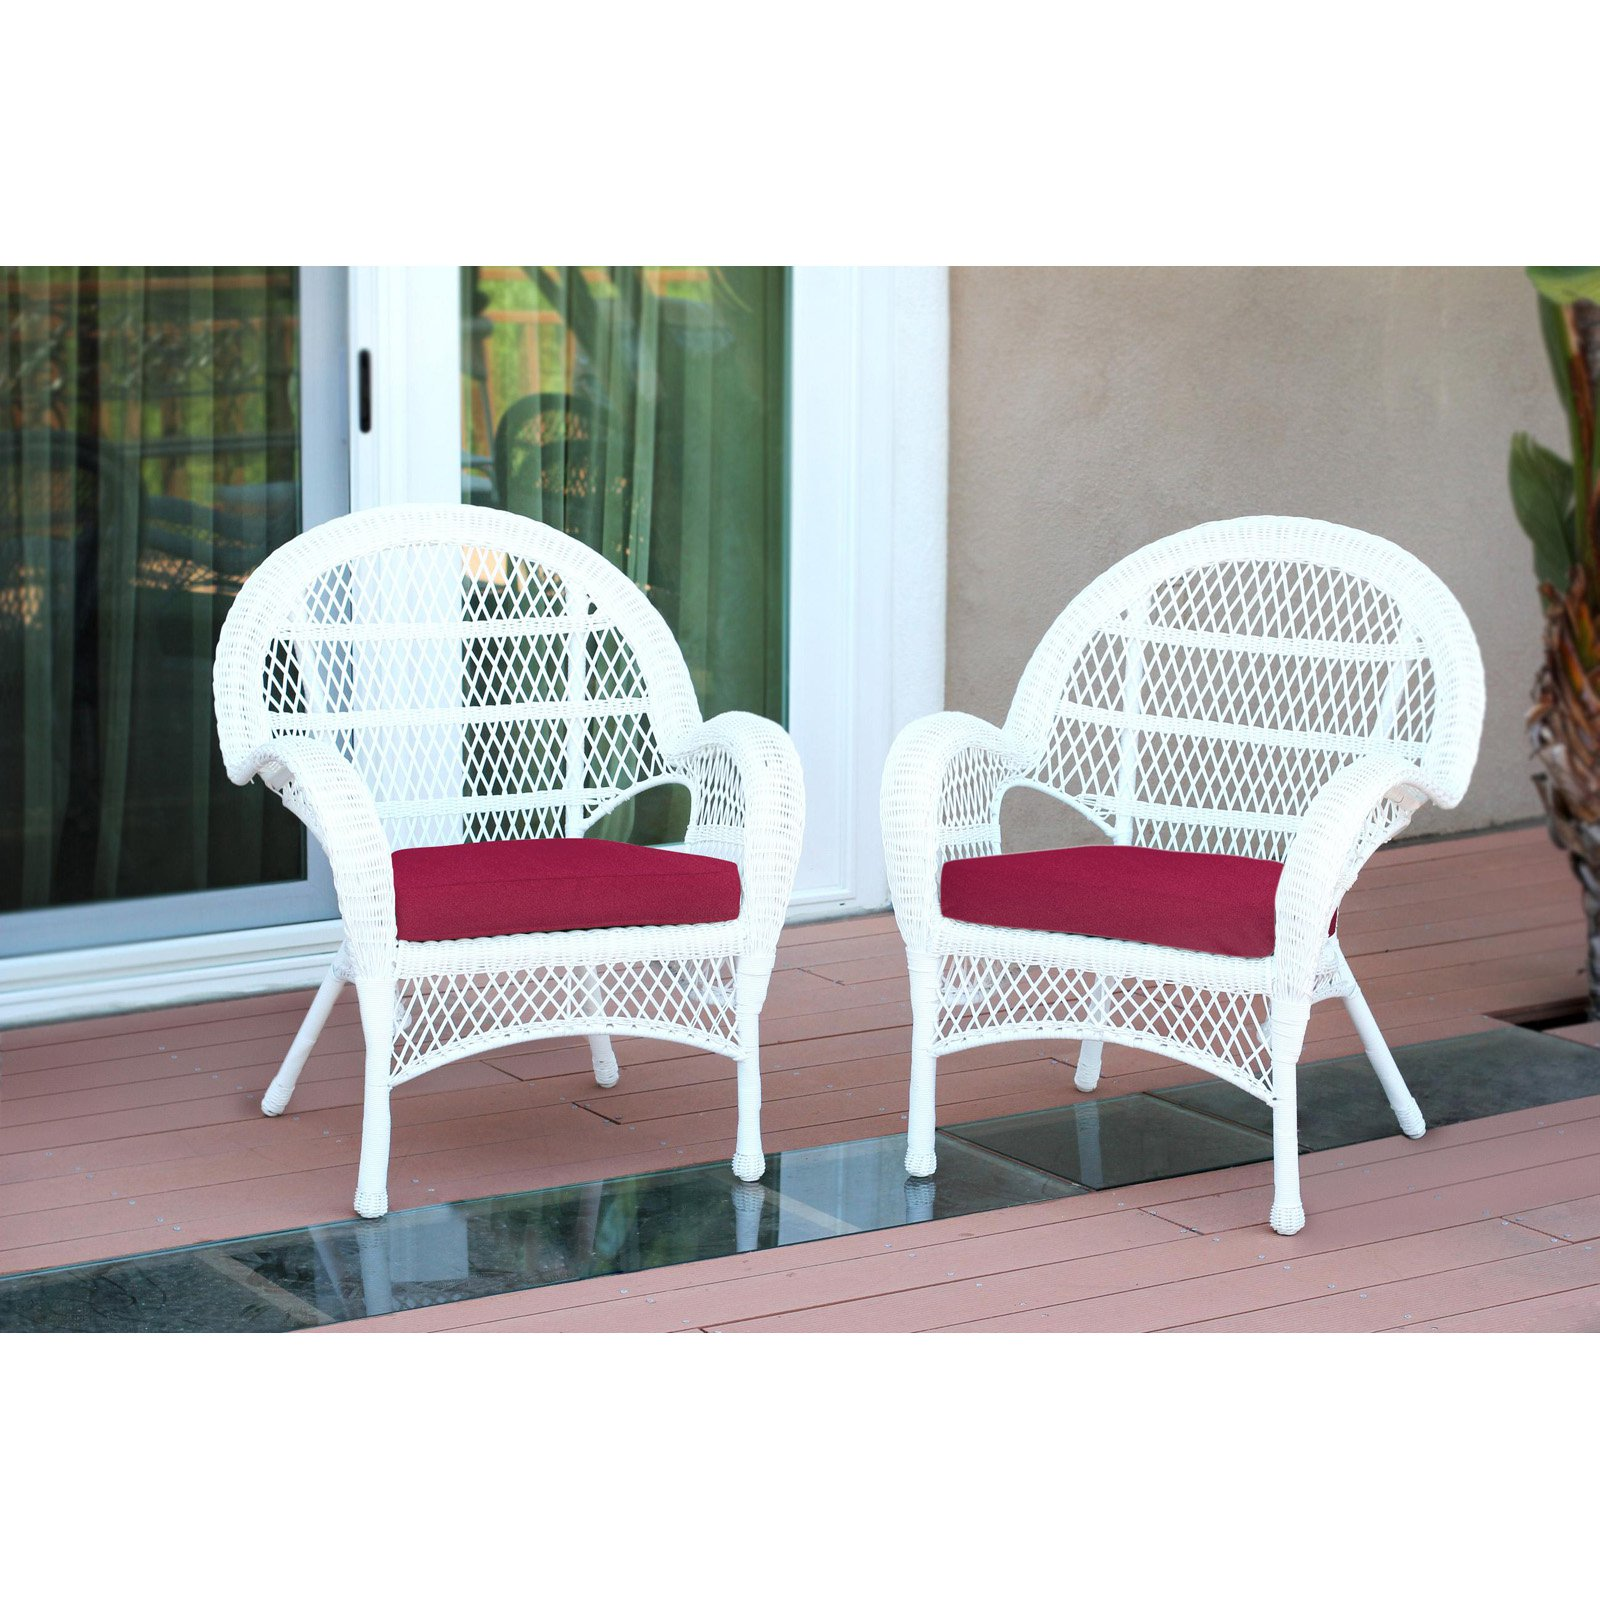 Jeco Santa Maria Wicker Patio Chairs with Optional Cushion - Set of 2